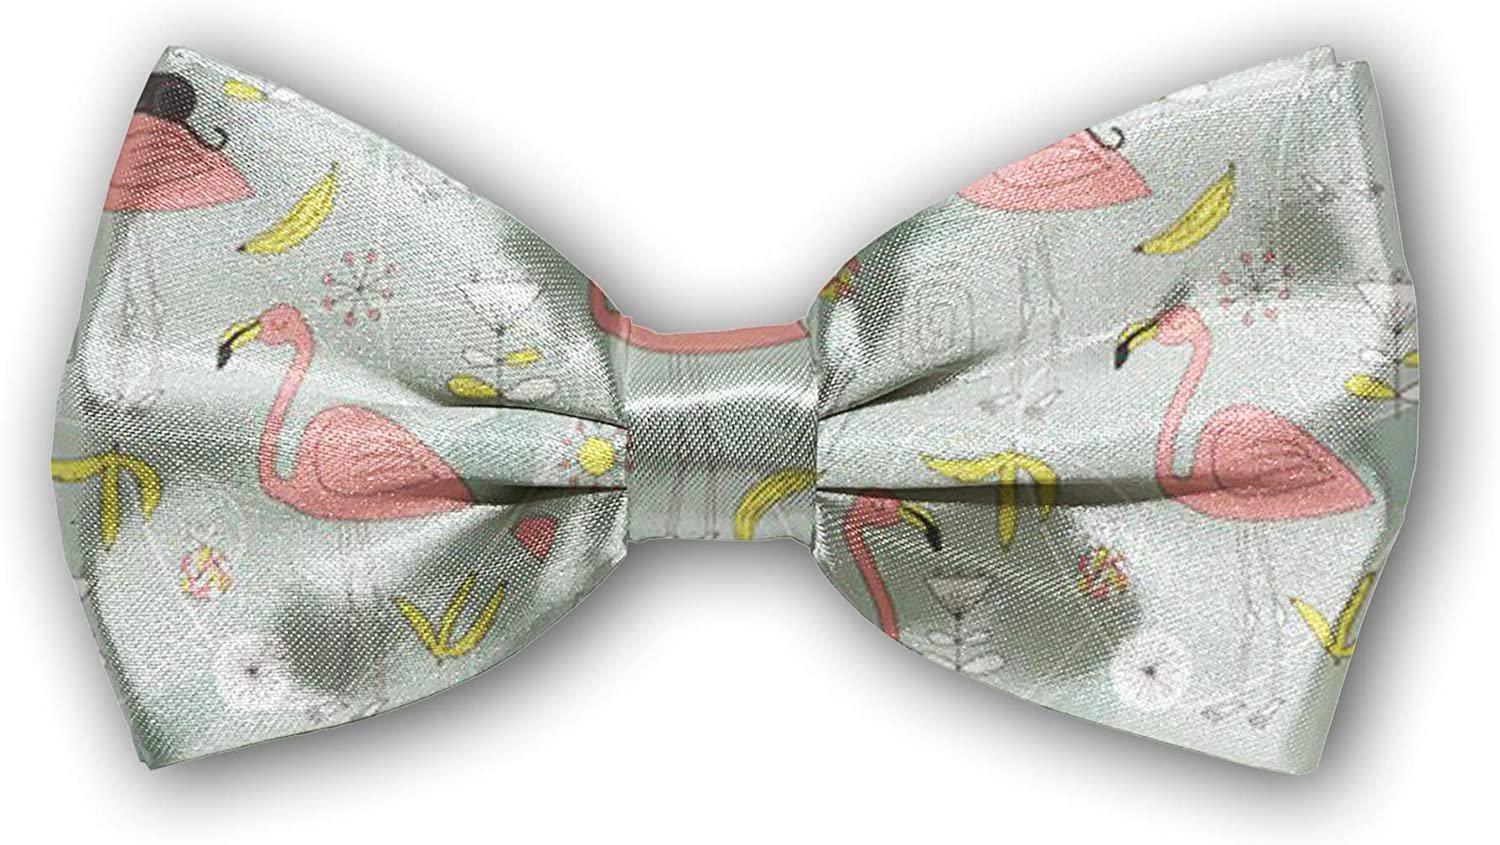 Bow Tie Tuxedo Butterfly Cotton Mens Super popular specialty store Boys Adjustable Max 71% OFF Bowtie for